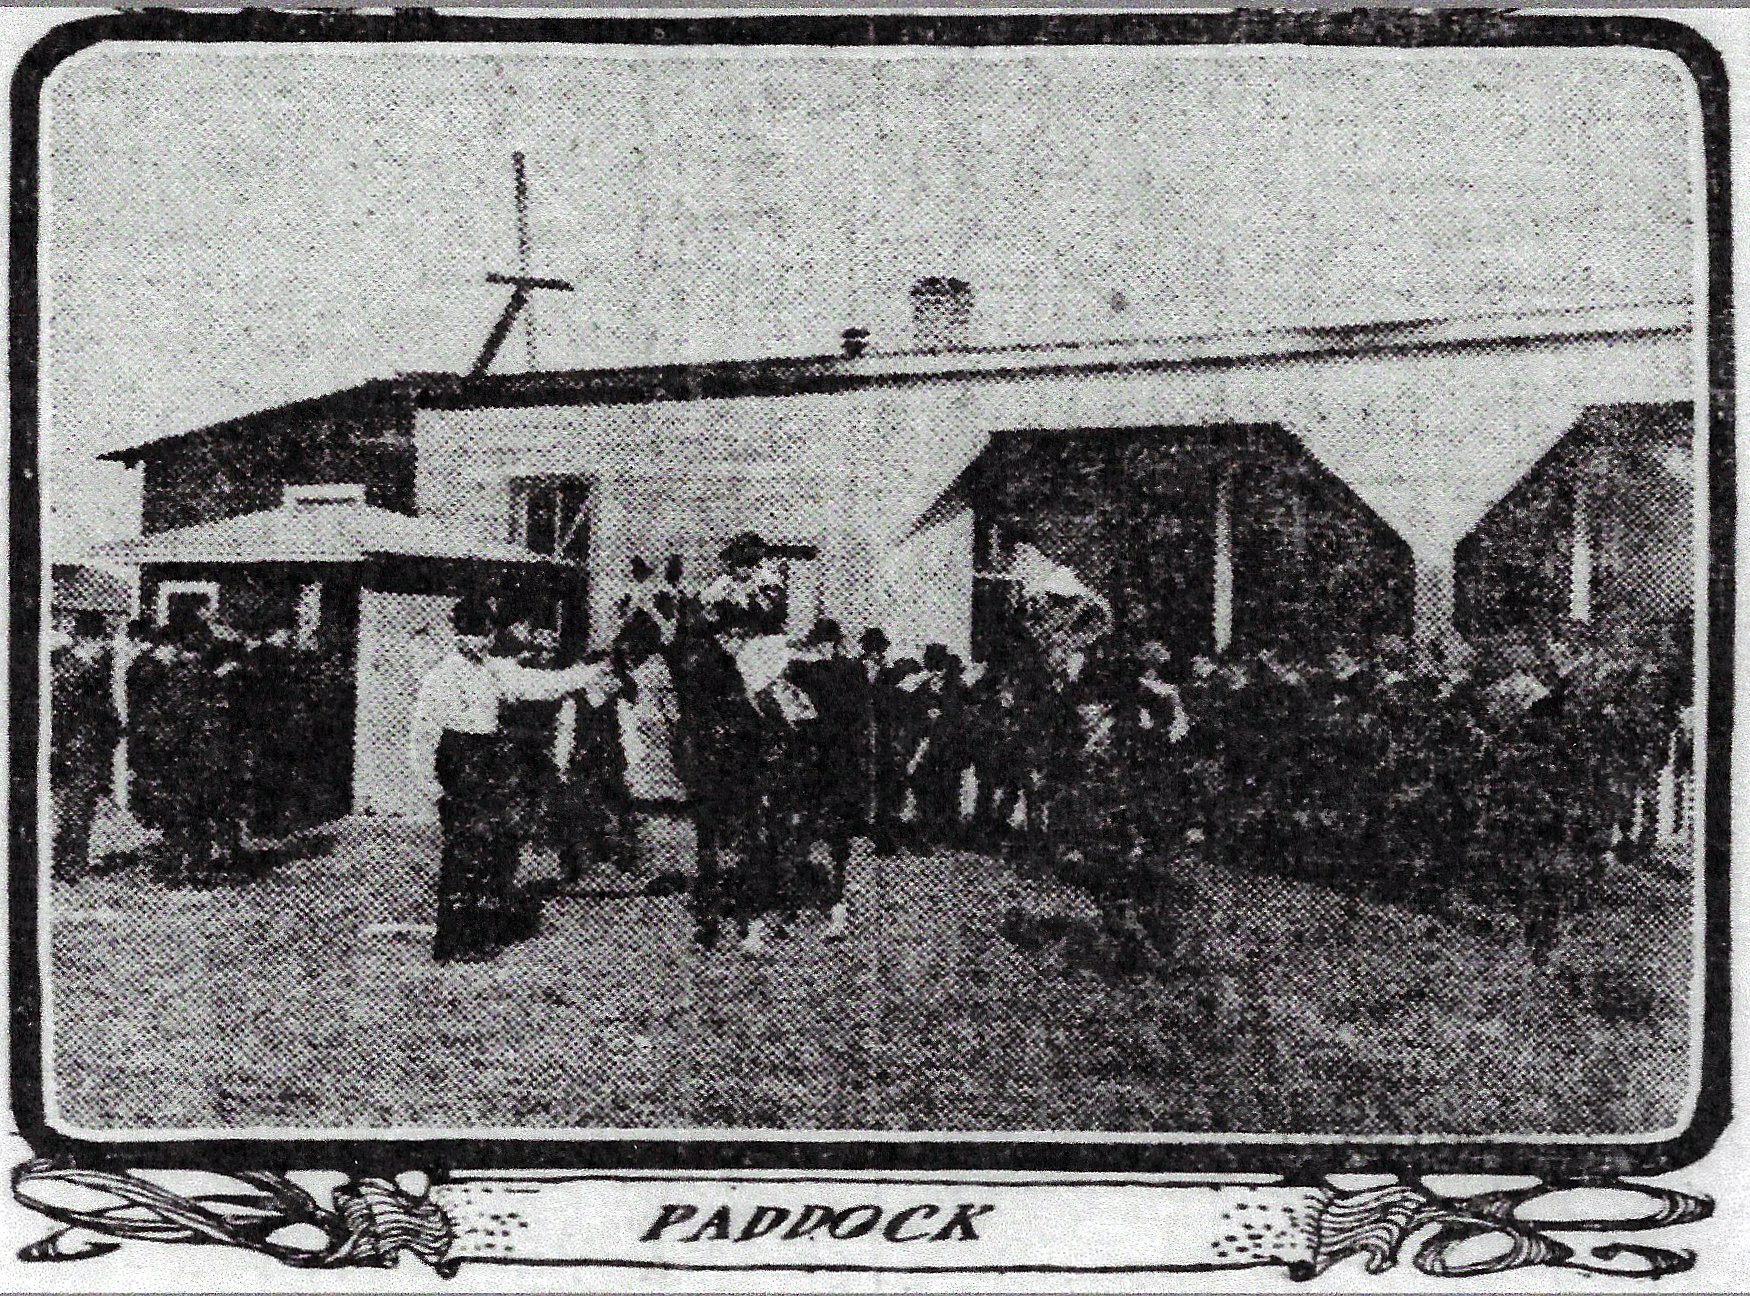 A photo in a 1901 edition of the Chicago Tribune shows us what the paddock at the Roby race track looked like. The paddock was an area to hold and exercise horses. The track had stables to accommodate as many as 500 horses at a time.